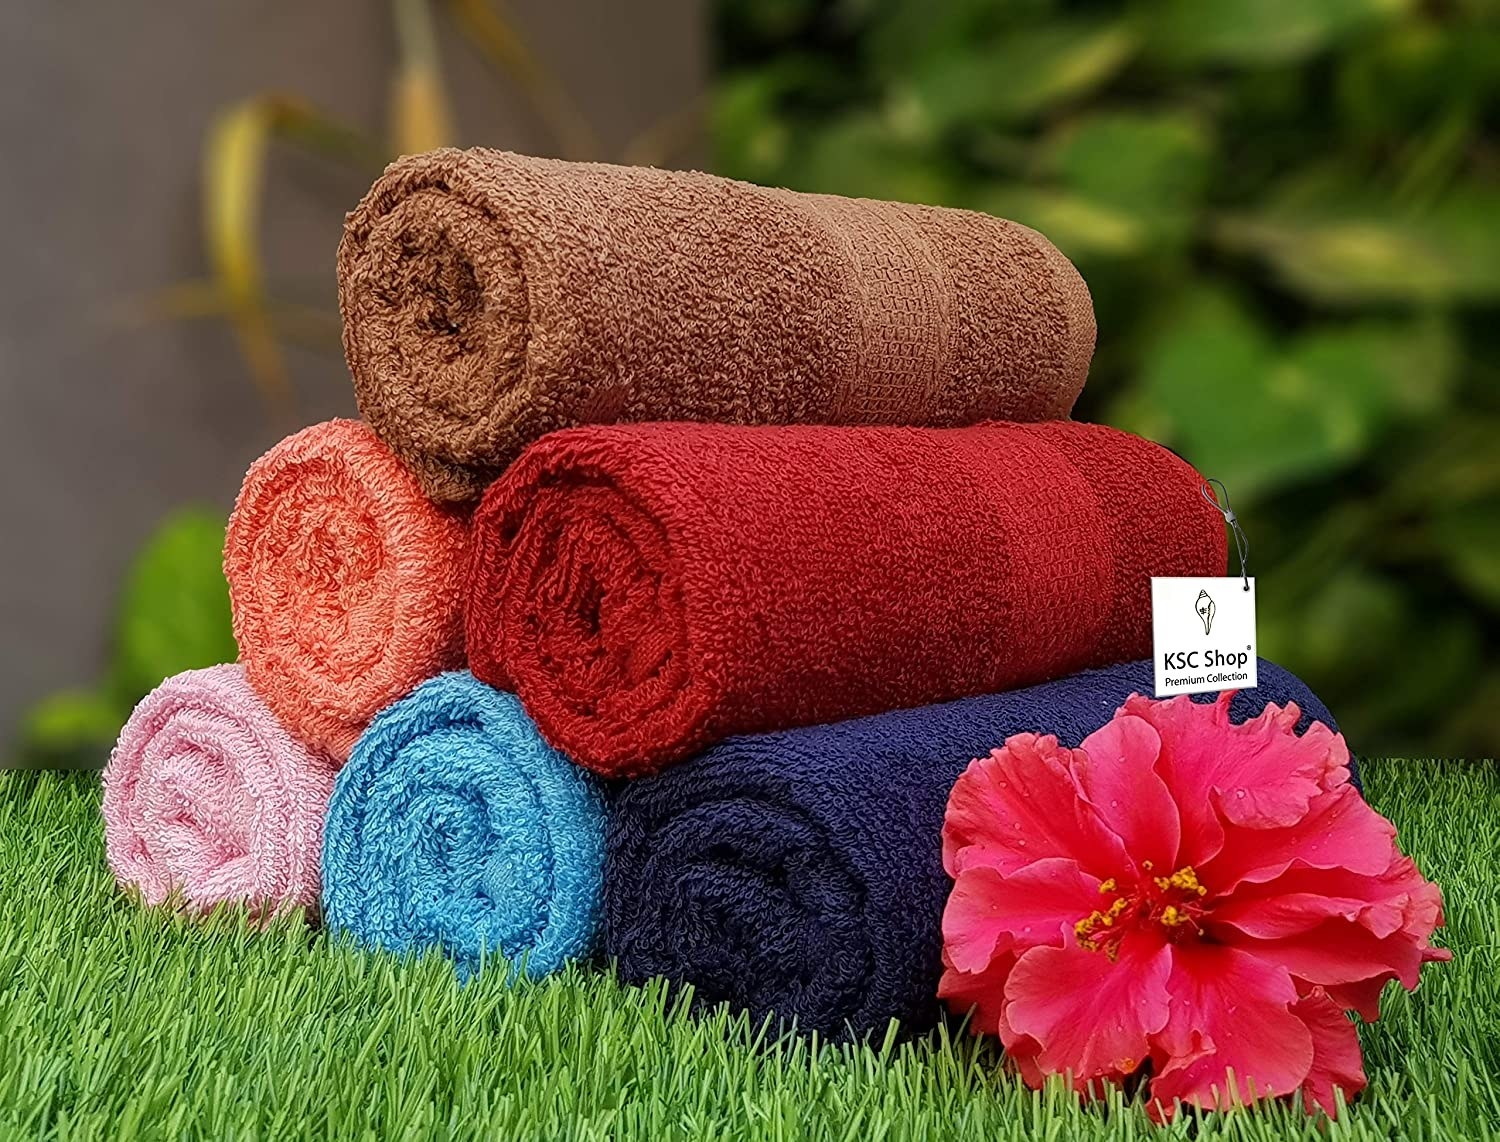 A set of cotton towels on grass